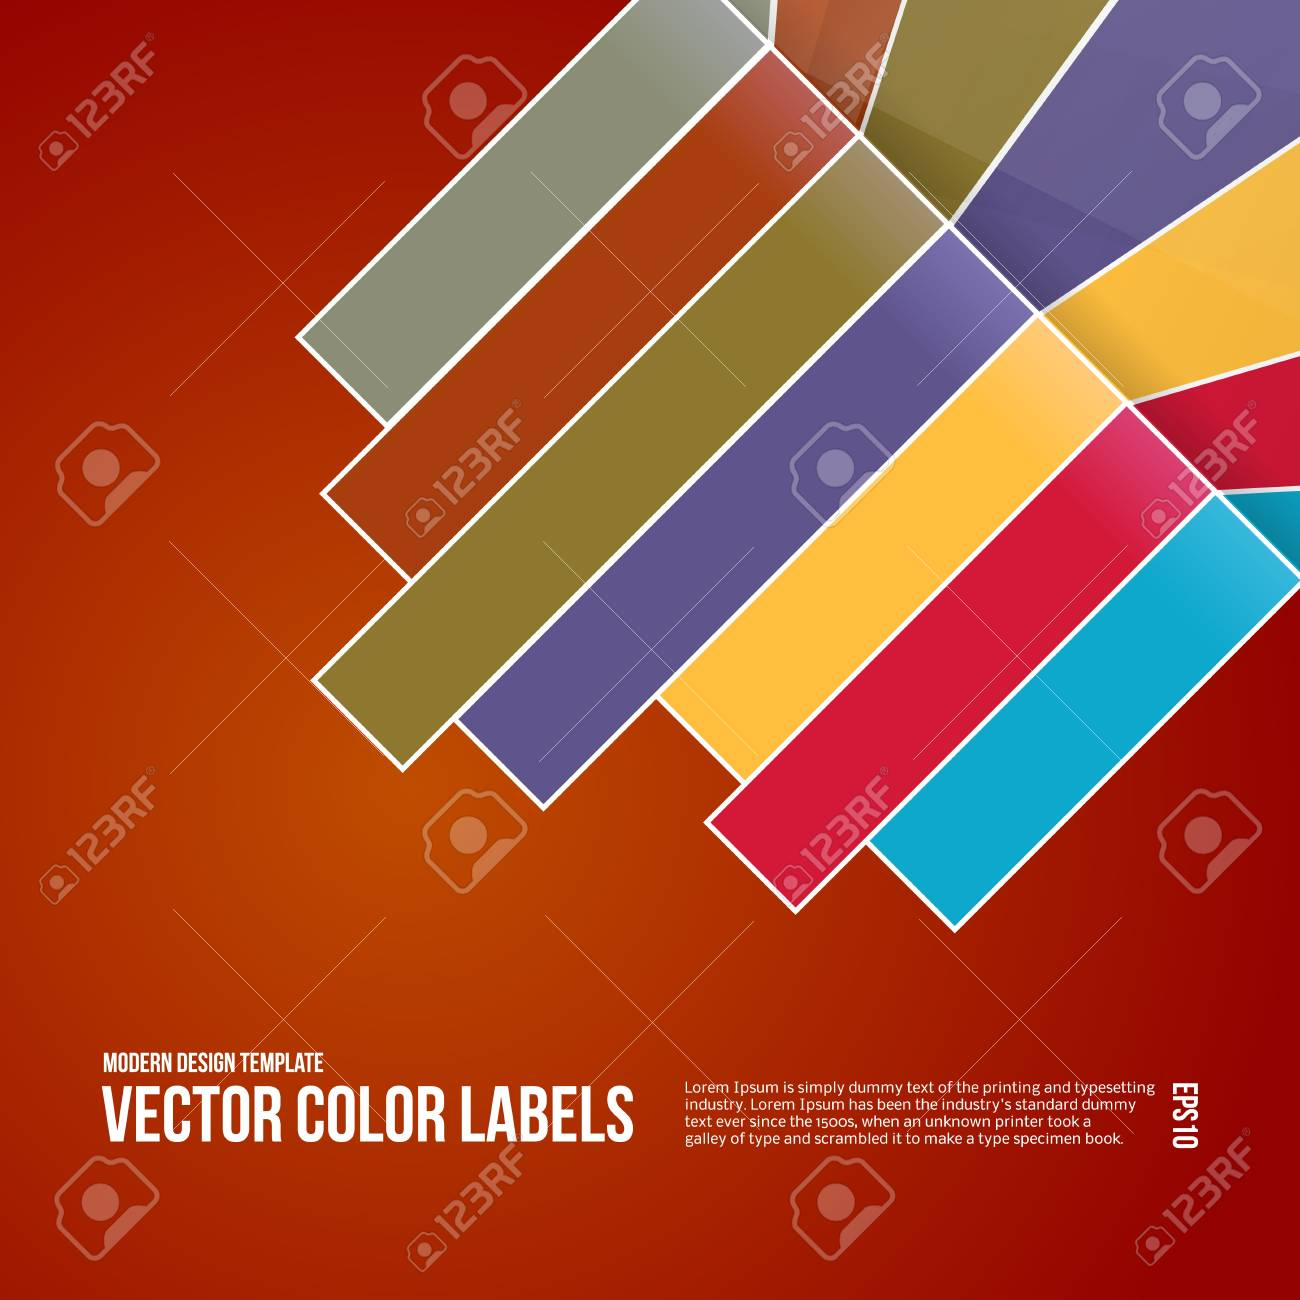 Abstract Design Background. Modern Template. Stock Vector - 19694063